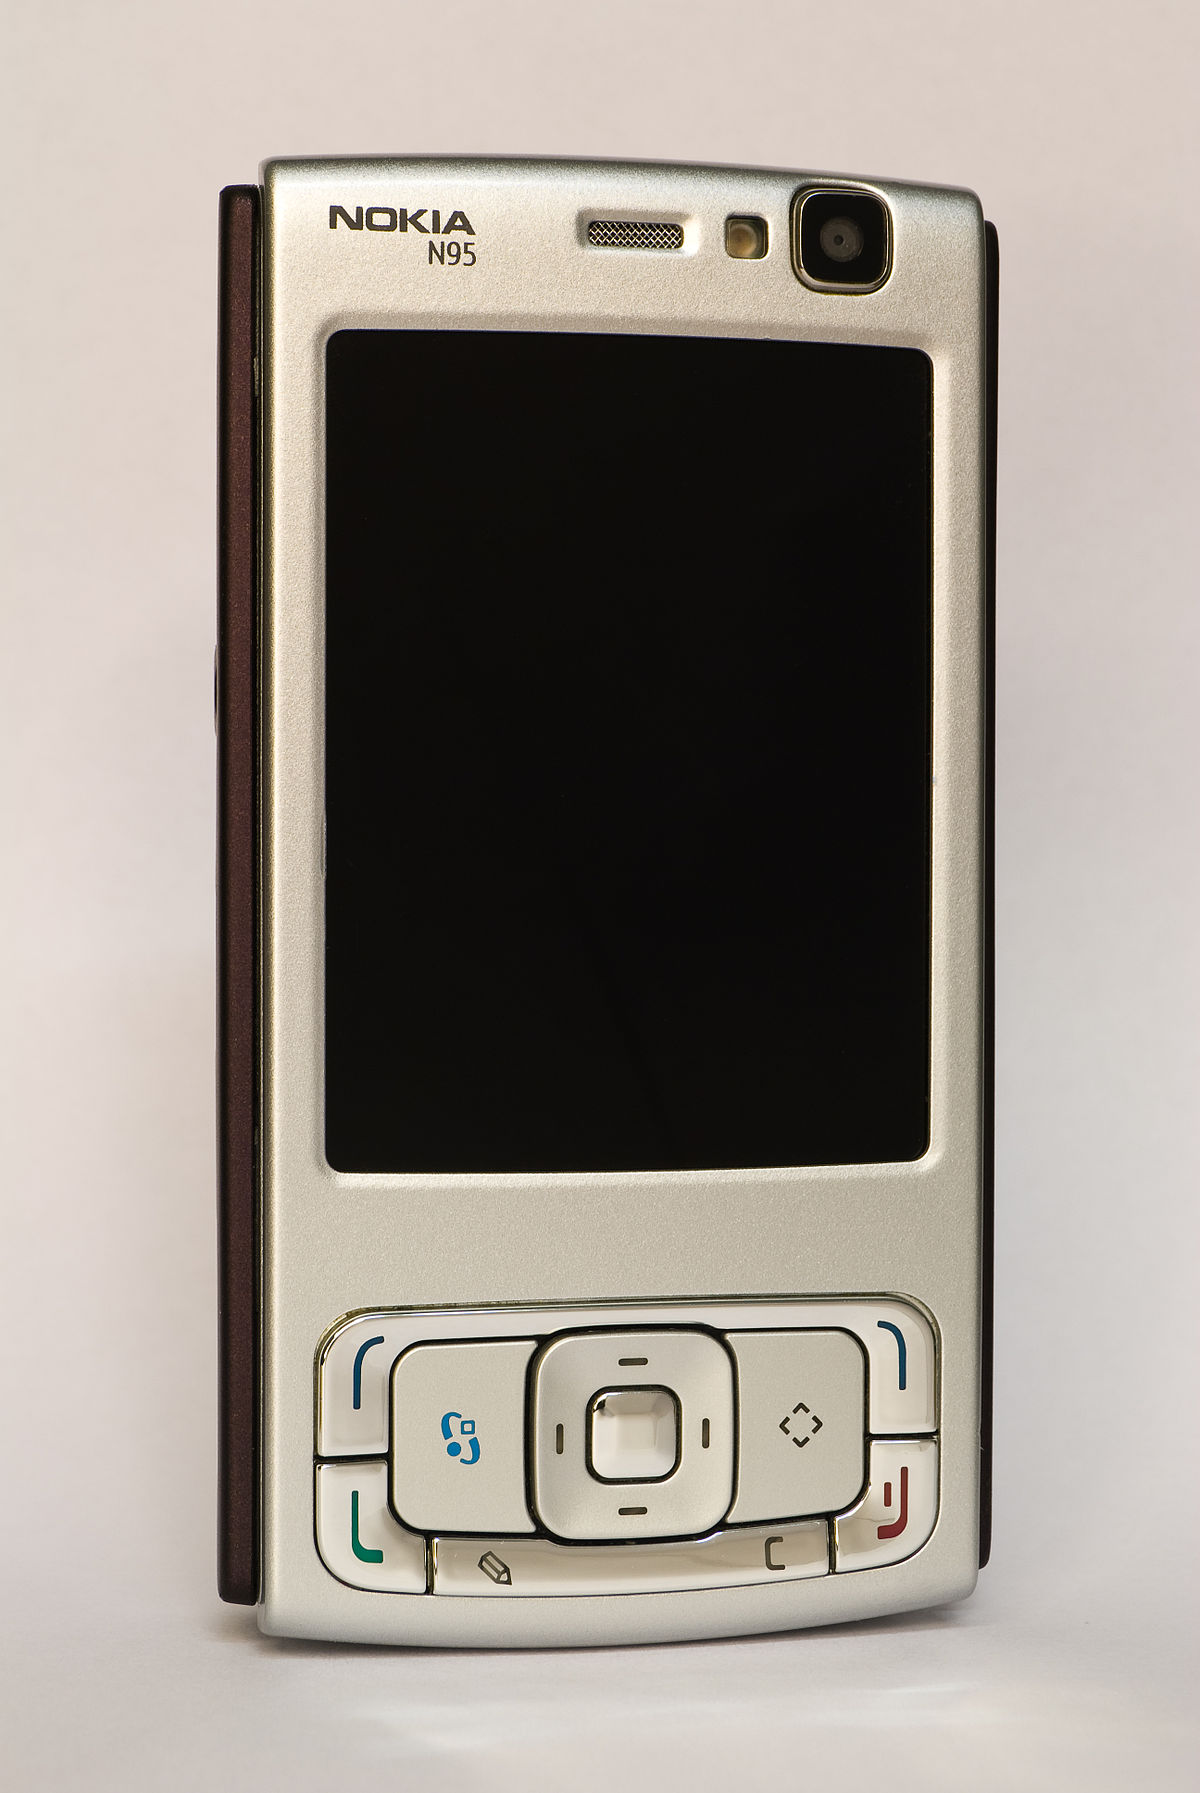 Nokia N95 Wikipedia How Power Window Switch Works